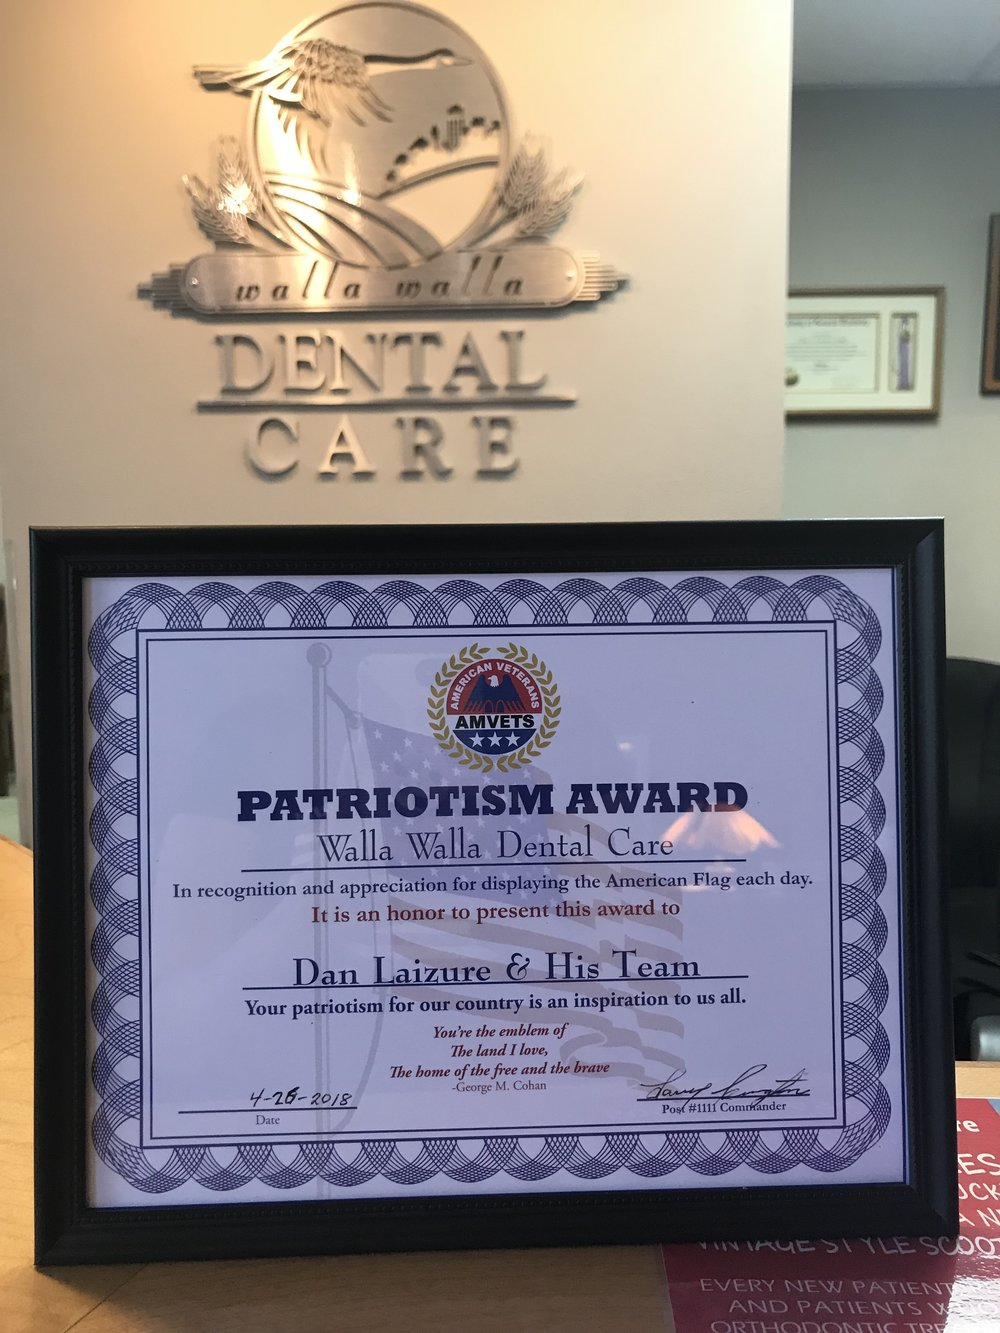 Patriotism Award - For the second year, Dr. Laizure has been presented with this inspirational award. We are proud supporters of our veterans and our country and will display our flag freely every day. Thank you AMVets!2018